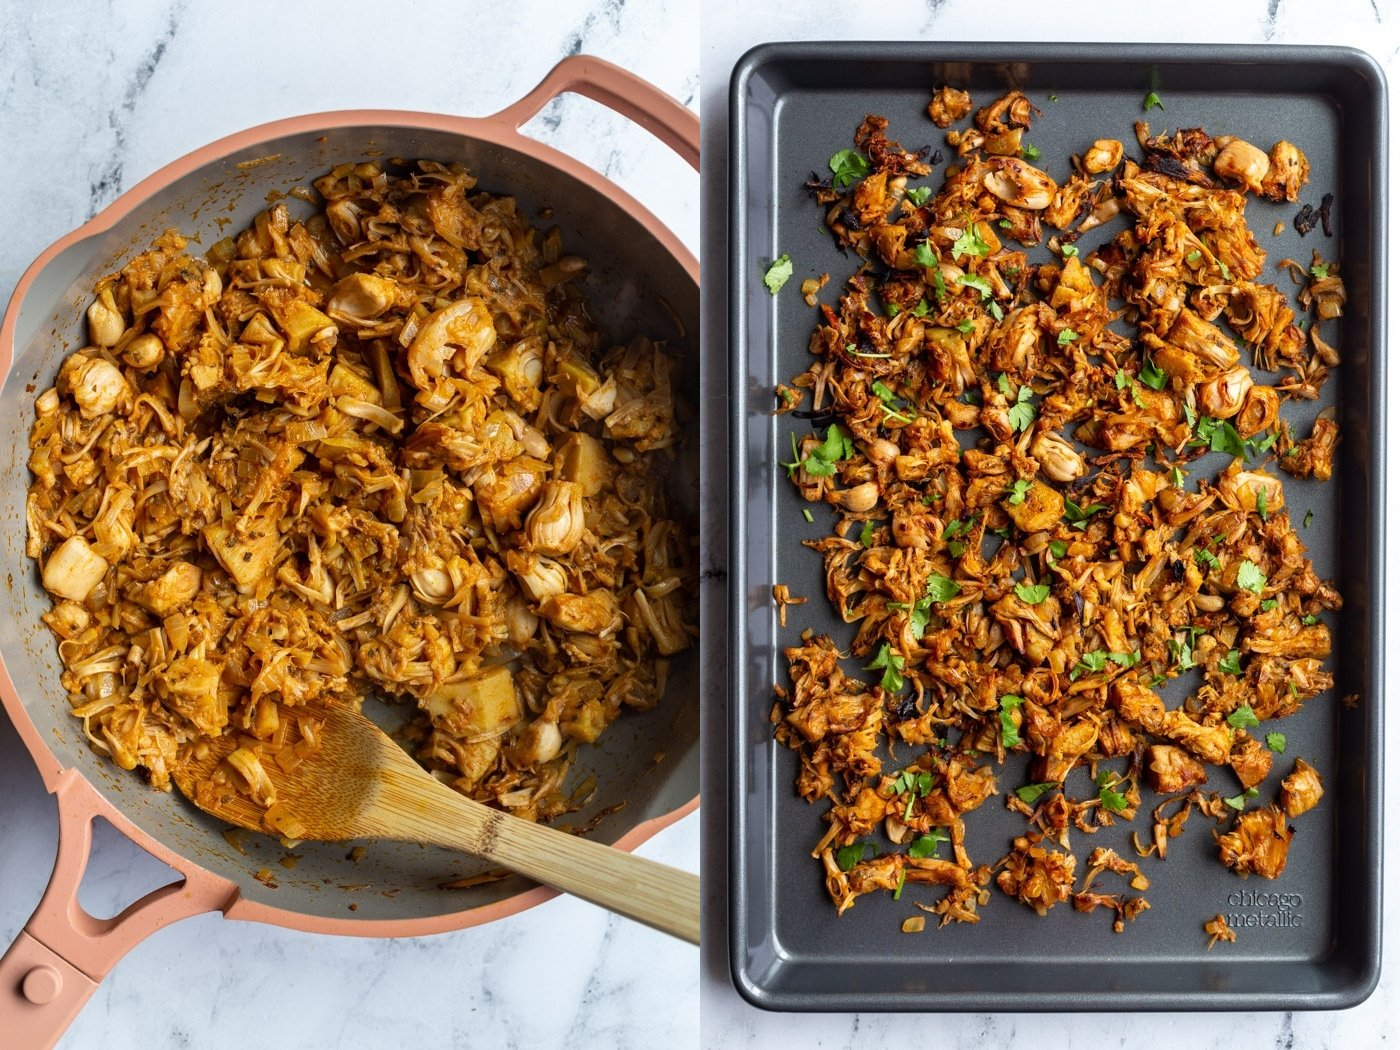 side by side images: left is a pink skillet with jackfruit and spices in it. Right image is shredded jackfruit carnitas on a small baking tray